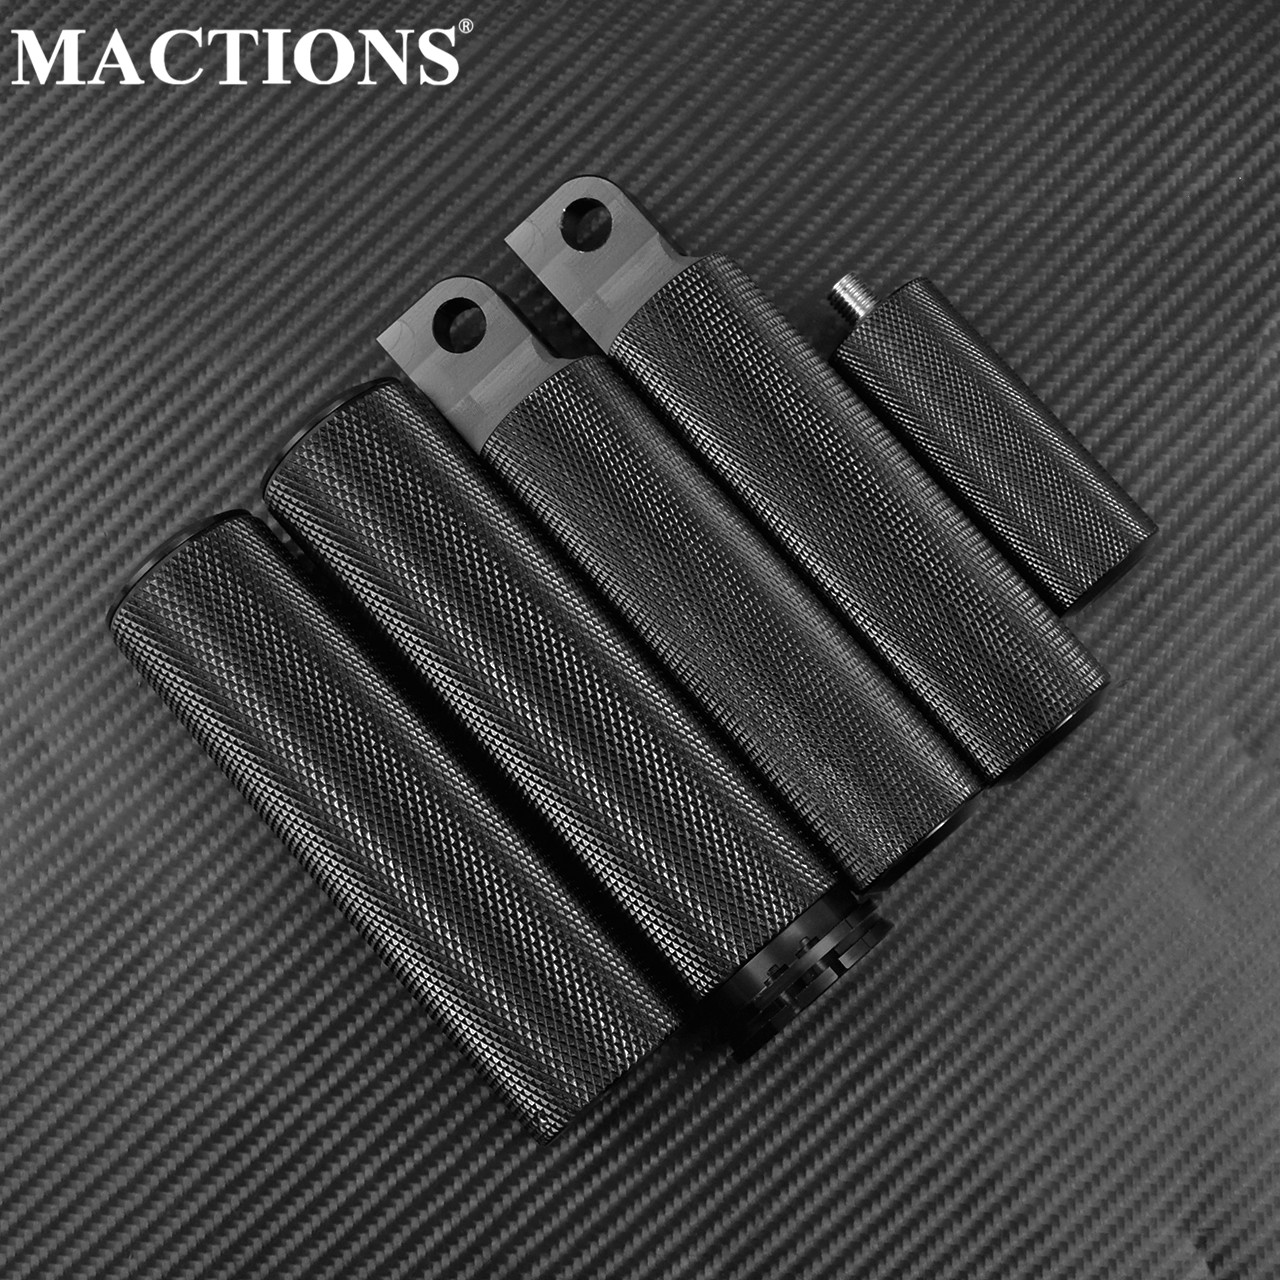 Motorcycle CNC Handlebar Grips Foot Pegs Shift Peg For Harley Sportster XL1200 883 48 Softail Dyna Touring,Black